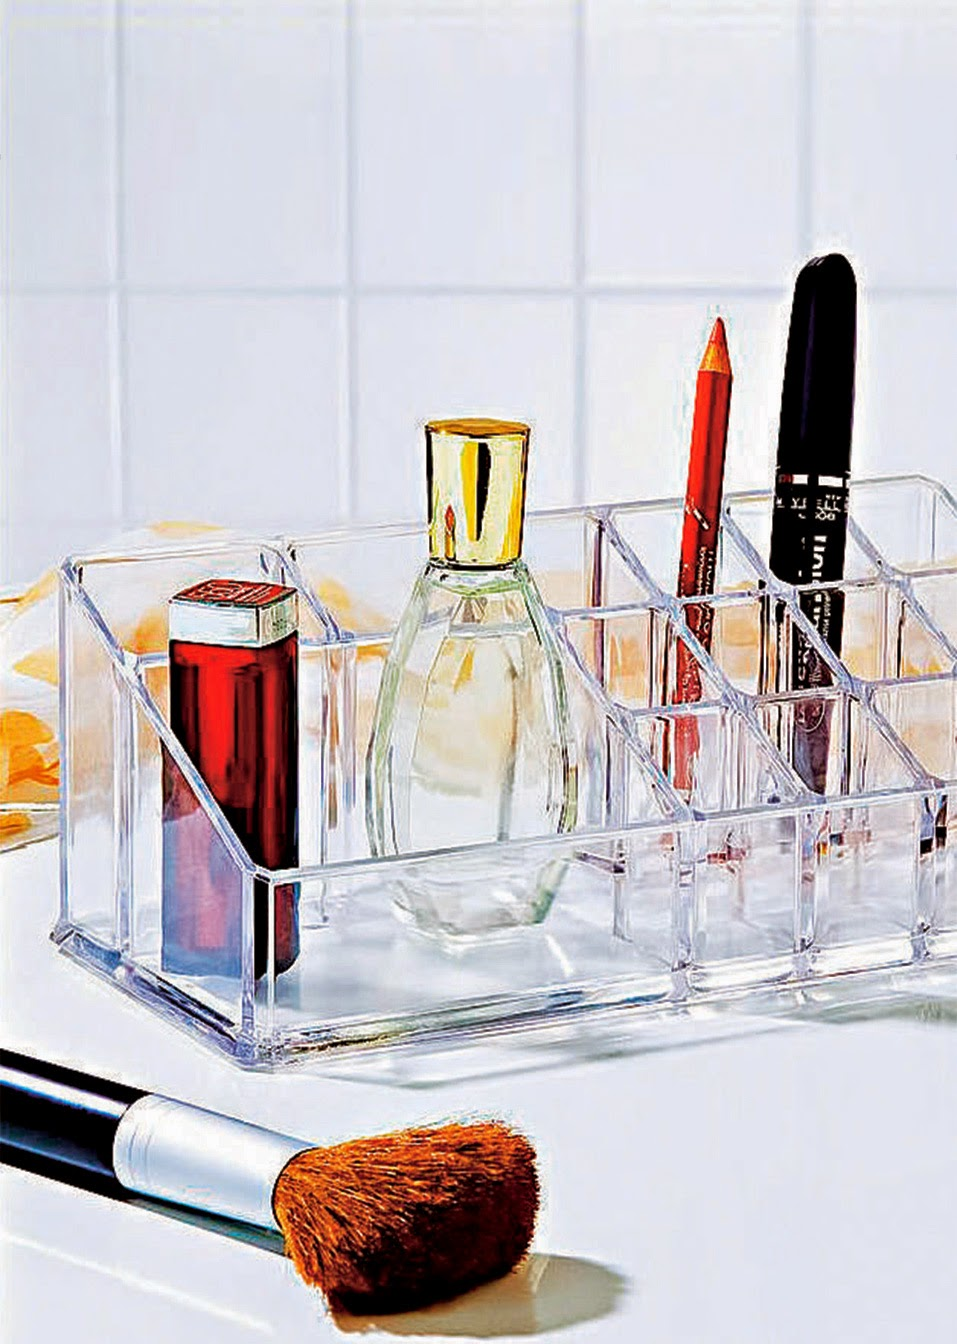 http://www.bonprix.cz/style/organizer-na-make-up-118068542/?catalogueNumber=952587&type=image&source=4